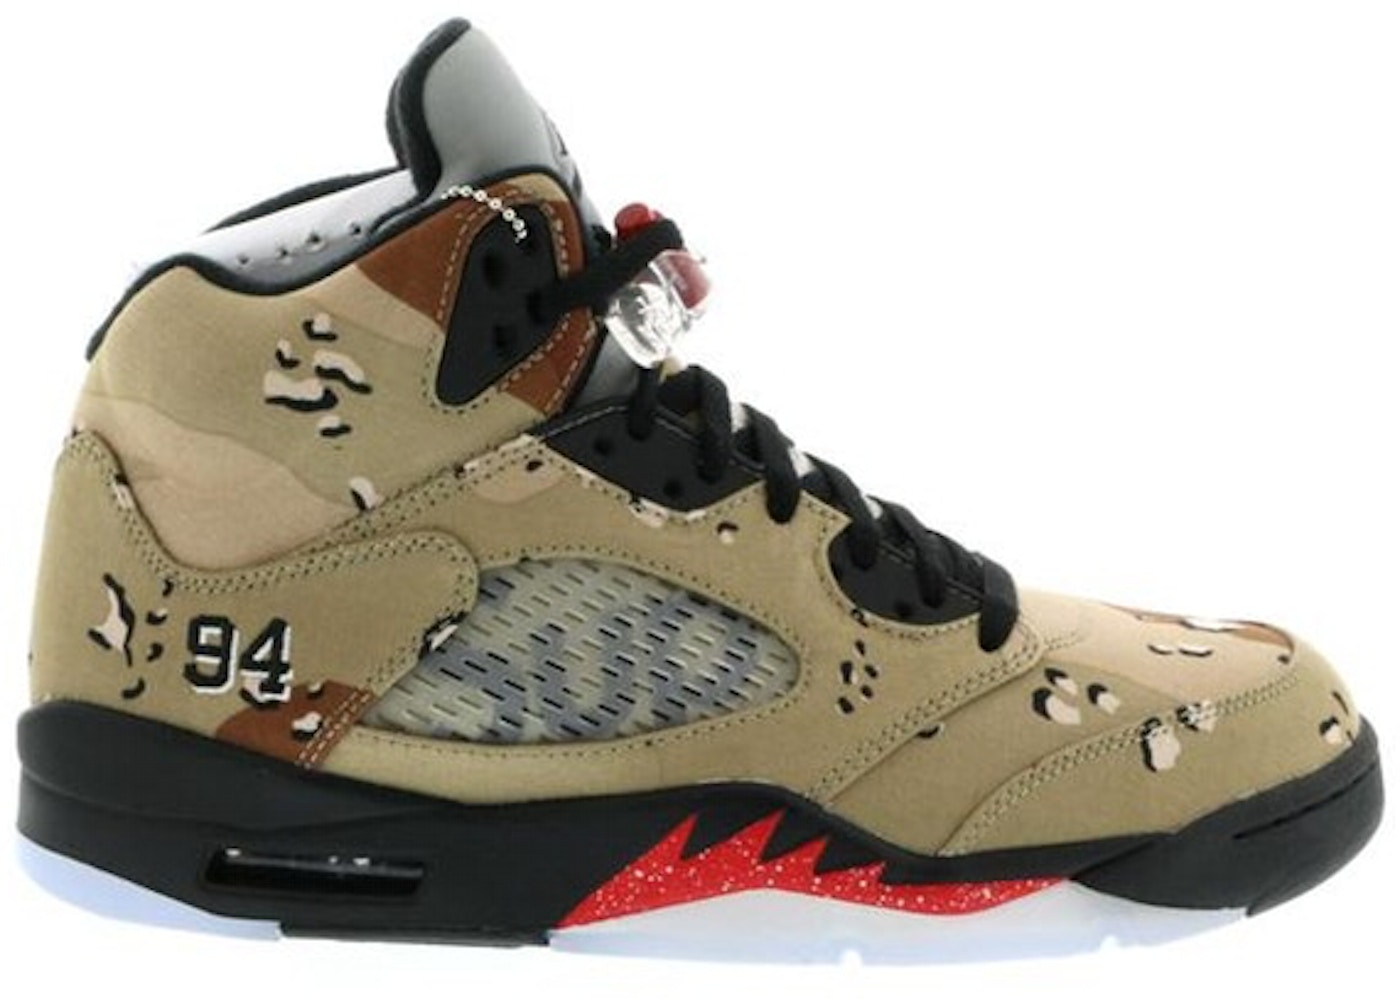 ccd8310d2cb Air Jordan 5 Size 13 Shoes - Average Sale Price